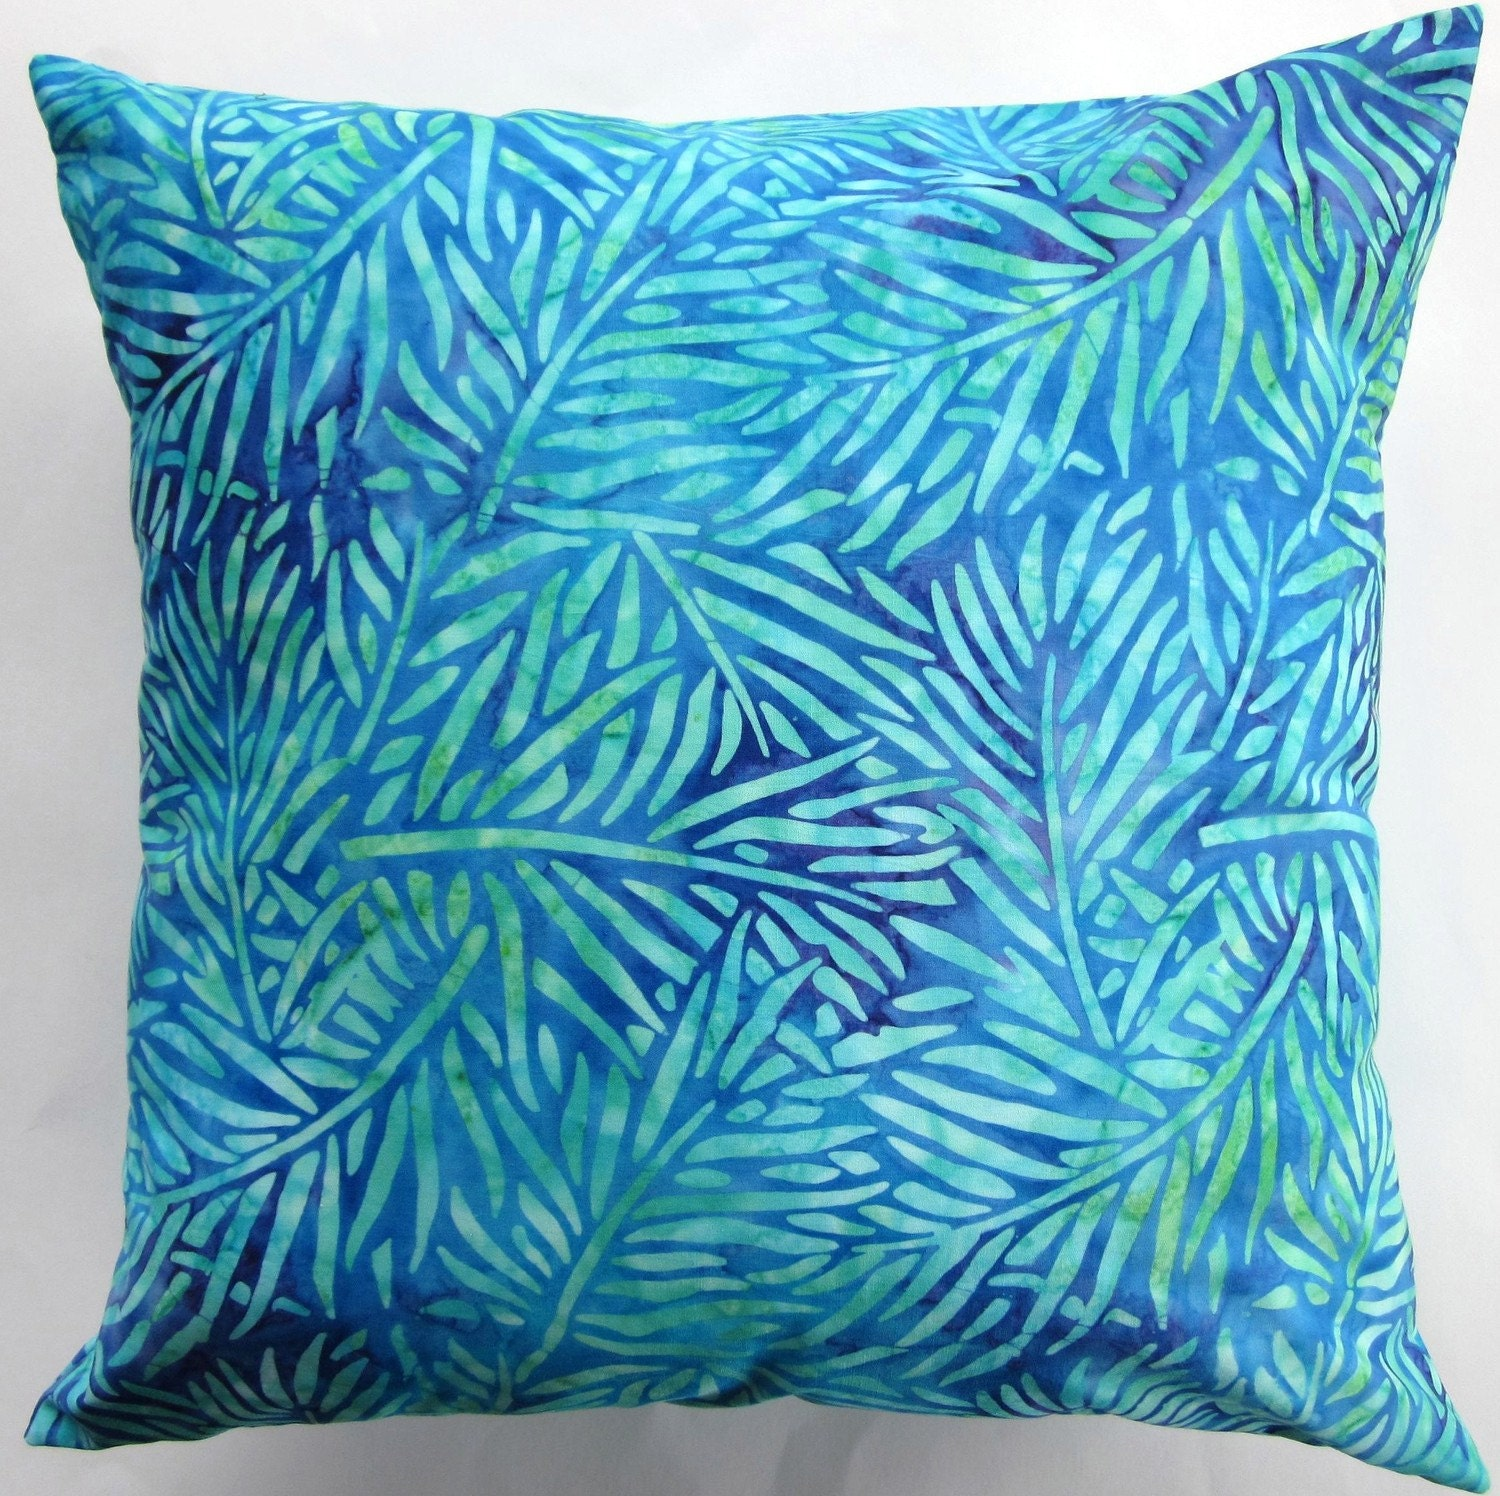 Turquoise Throw Pillows Covers : Turquoise Batik Throw Pillow Cover Cushion Cover in